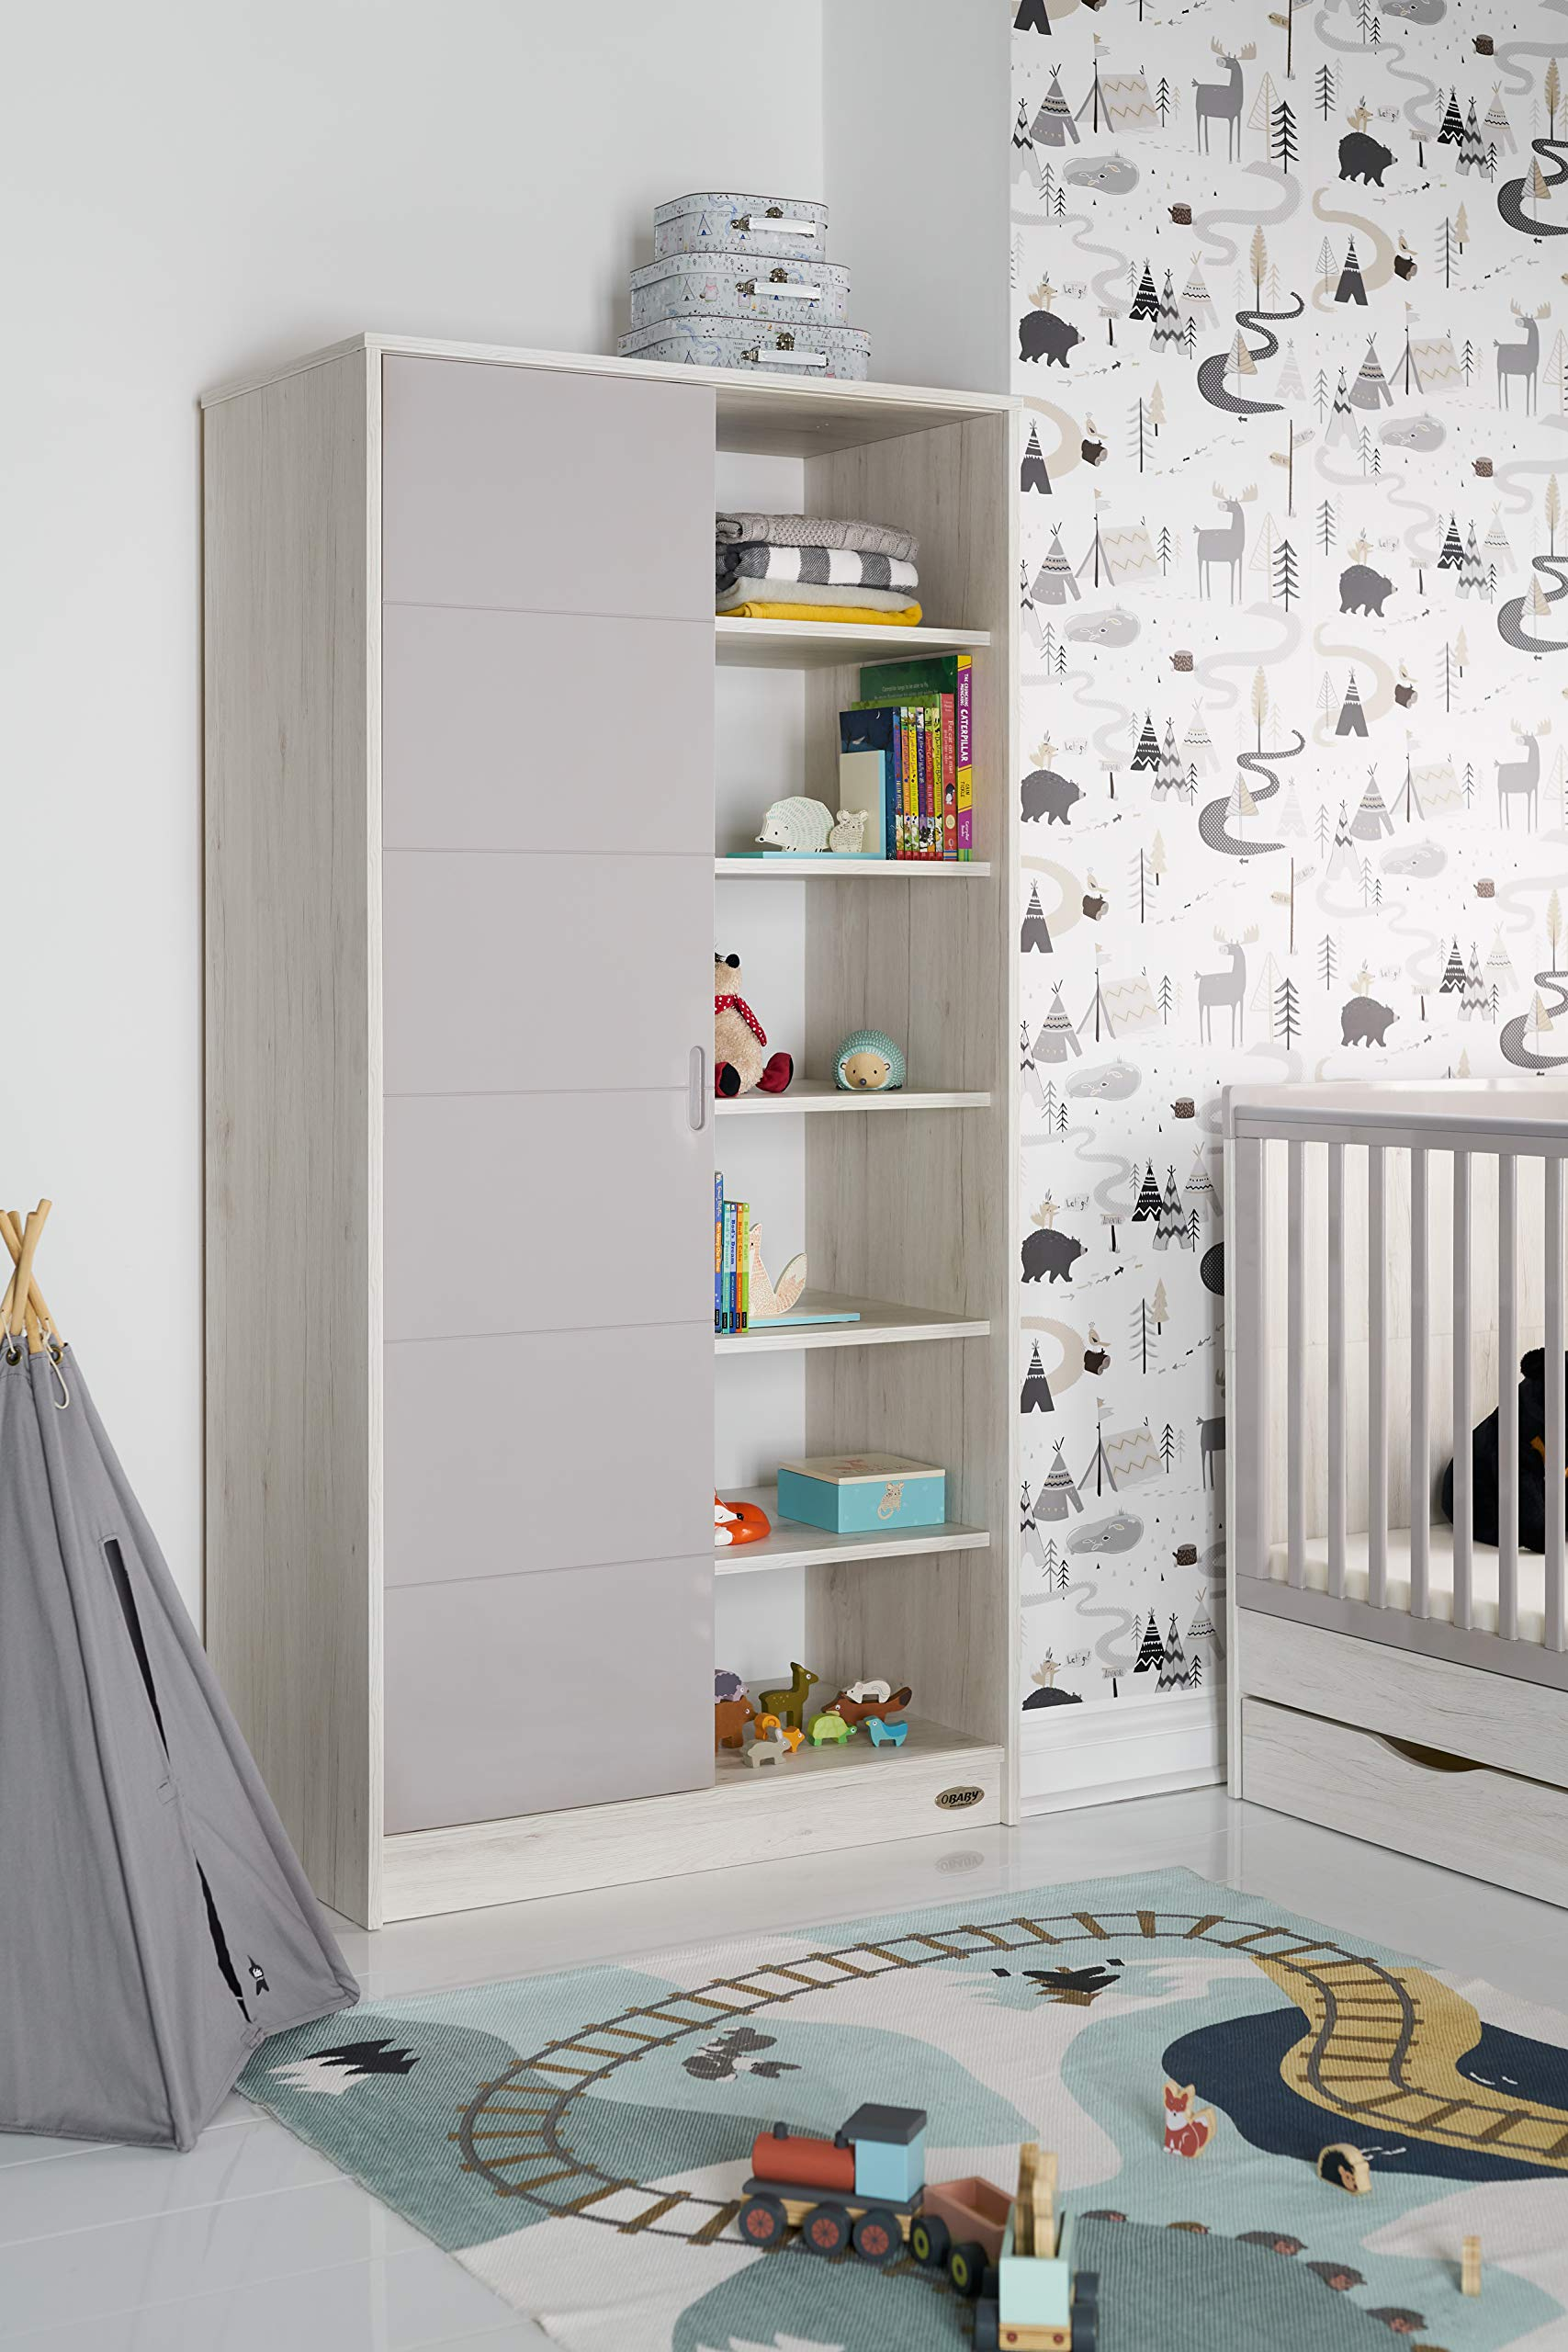 Obaby Madrid Double Wardrobe, Lunar Obaby One side offers two hanging rails and one fixed shelf The other side offers 6 deep fixed shelves Gloss sliding door is reversible and offers easy access to both sides 1